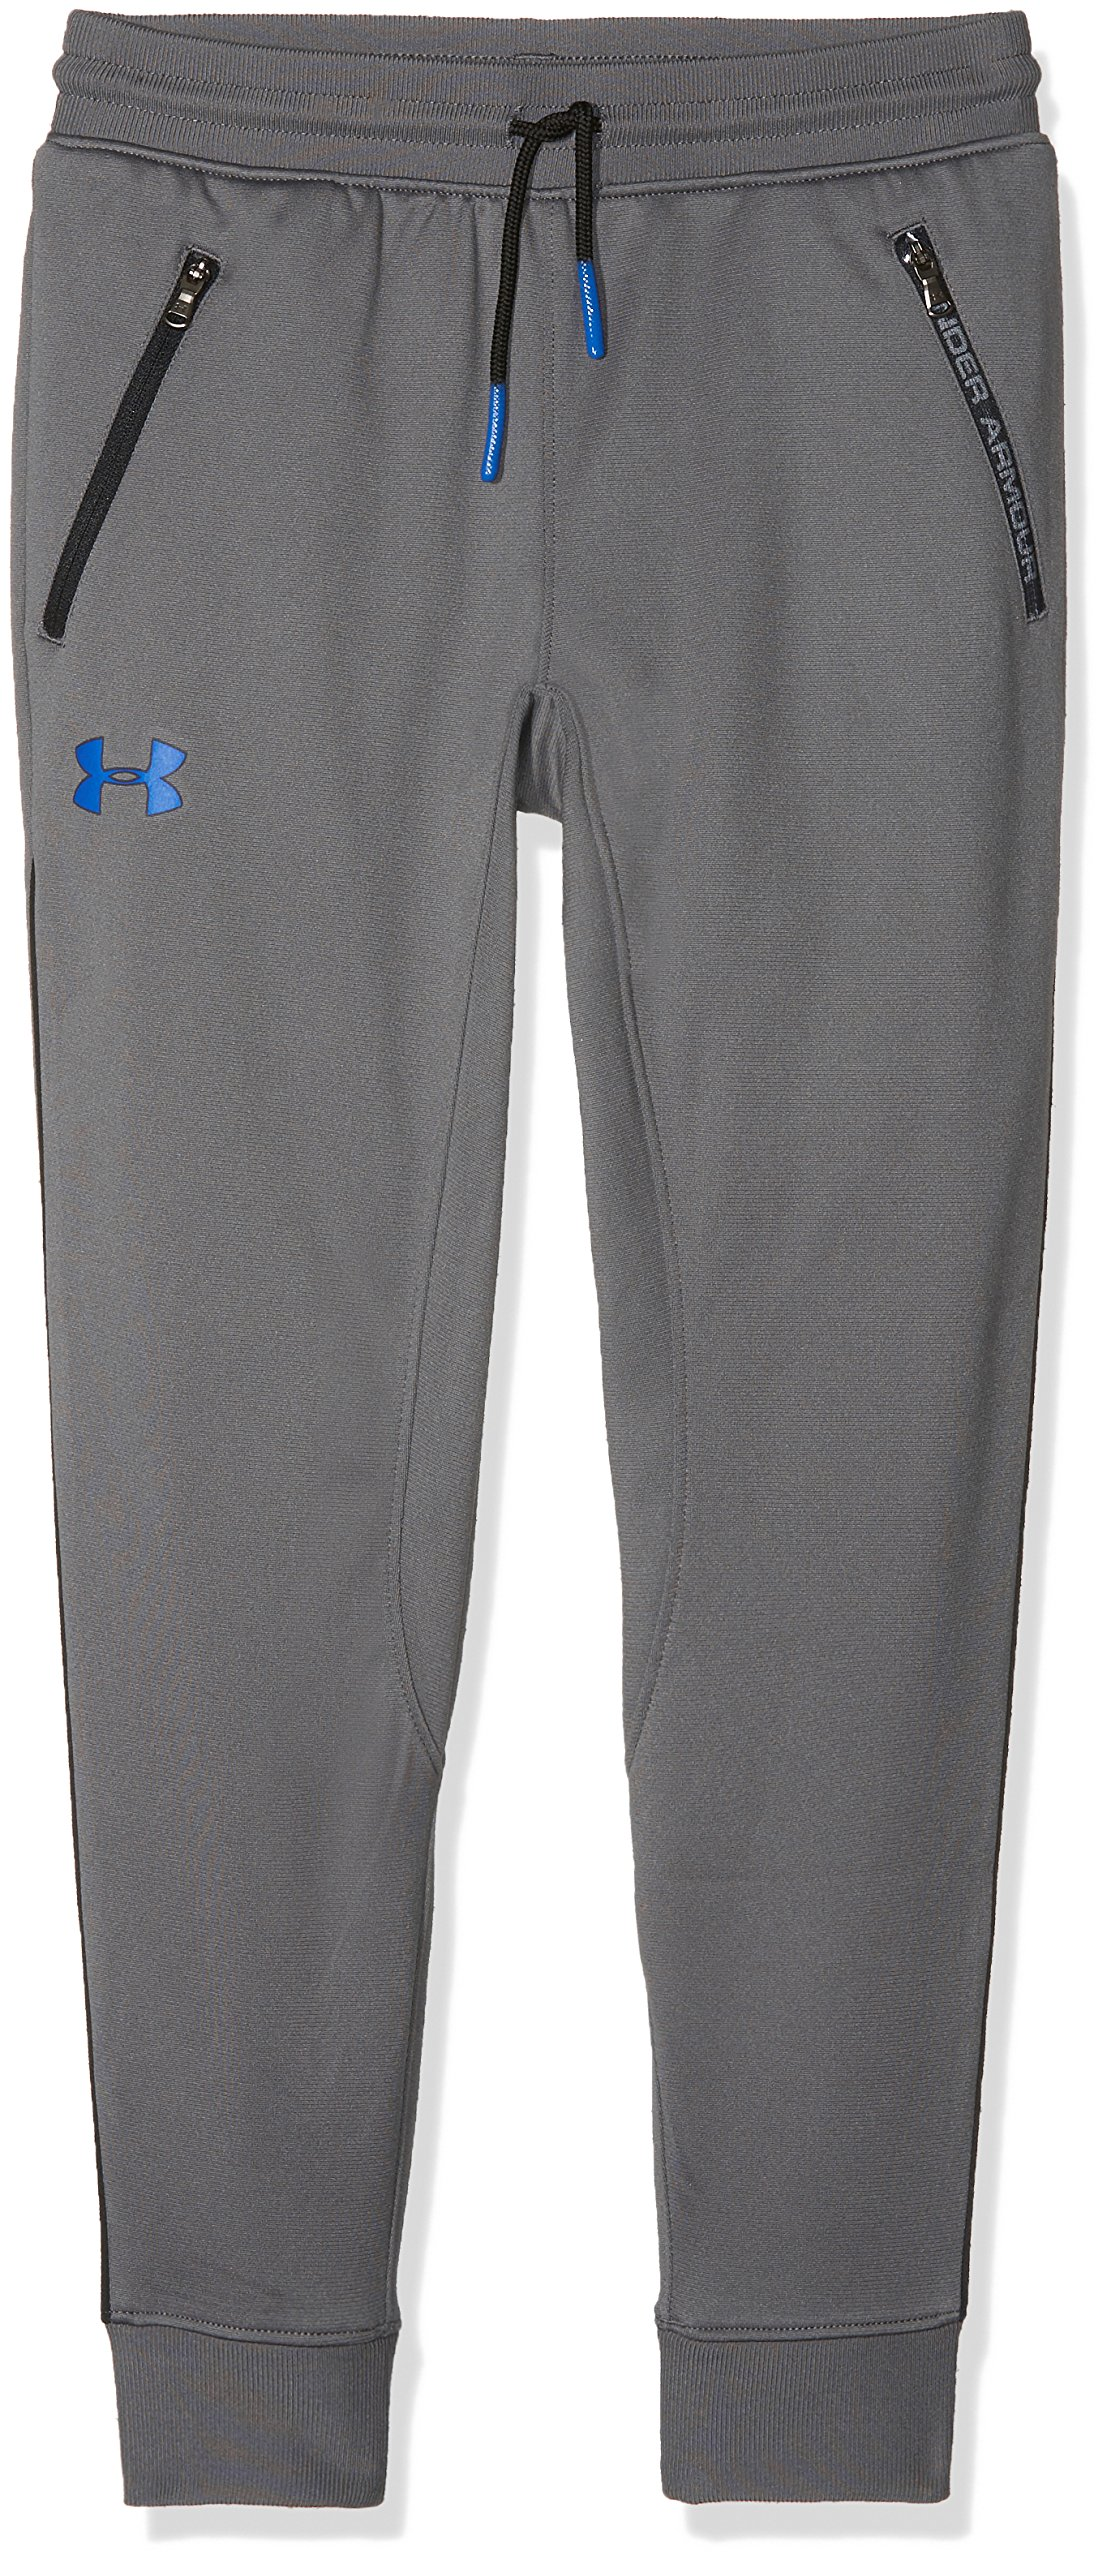 Under Armour Boys' Pennant Tapered Pants,Graphite /Ultra Blue, Youth X-Small